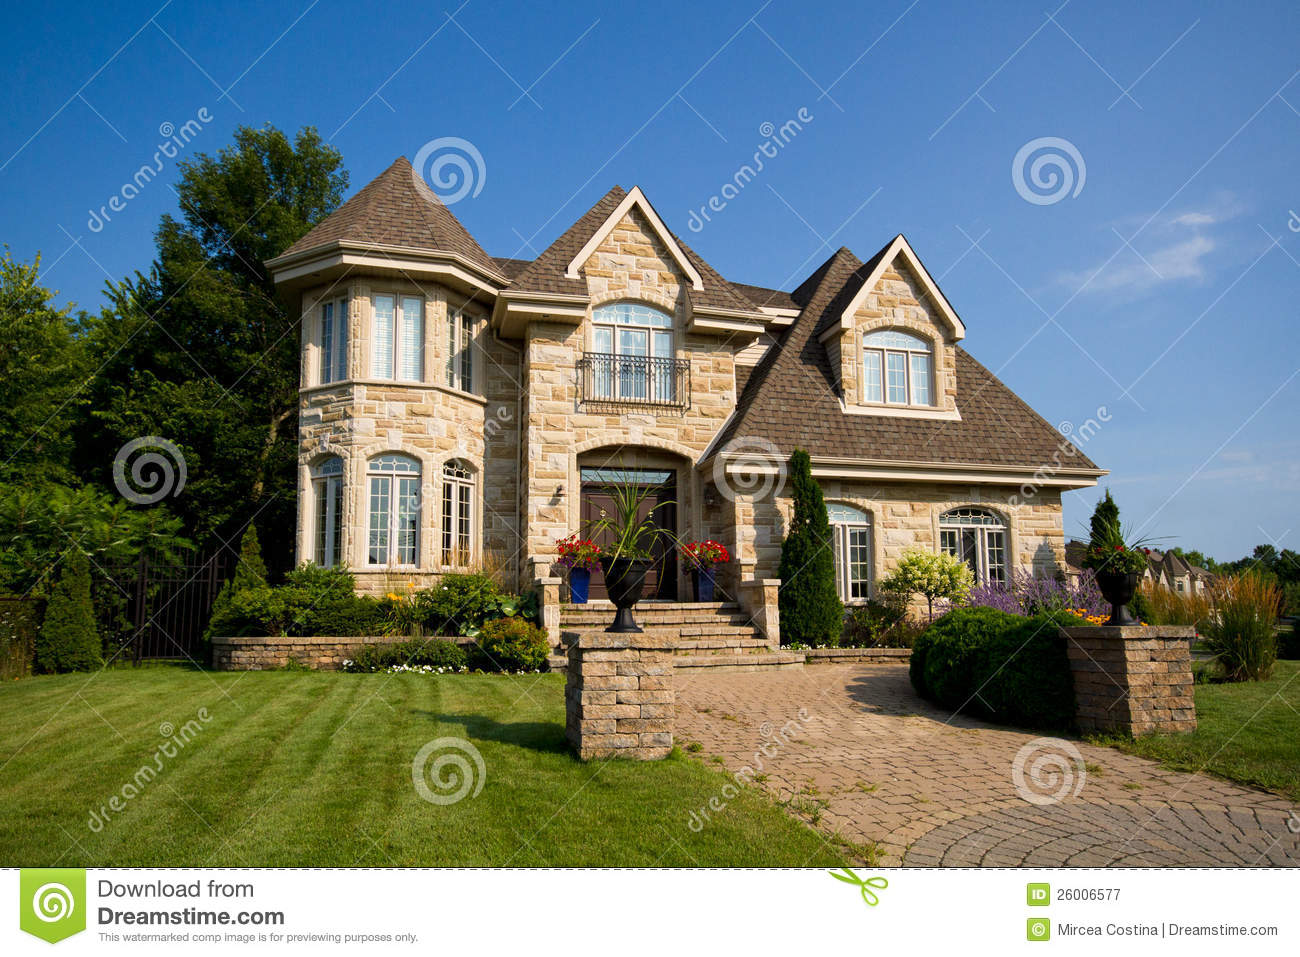 Royalty Free Stock Photography: Big House. Image: 26006577